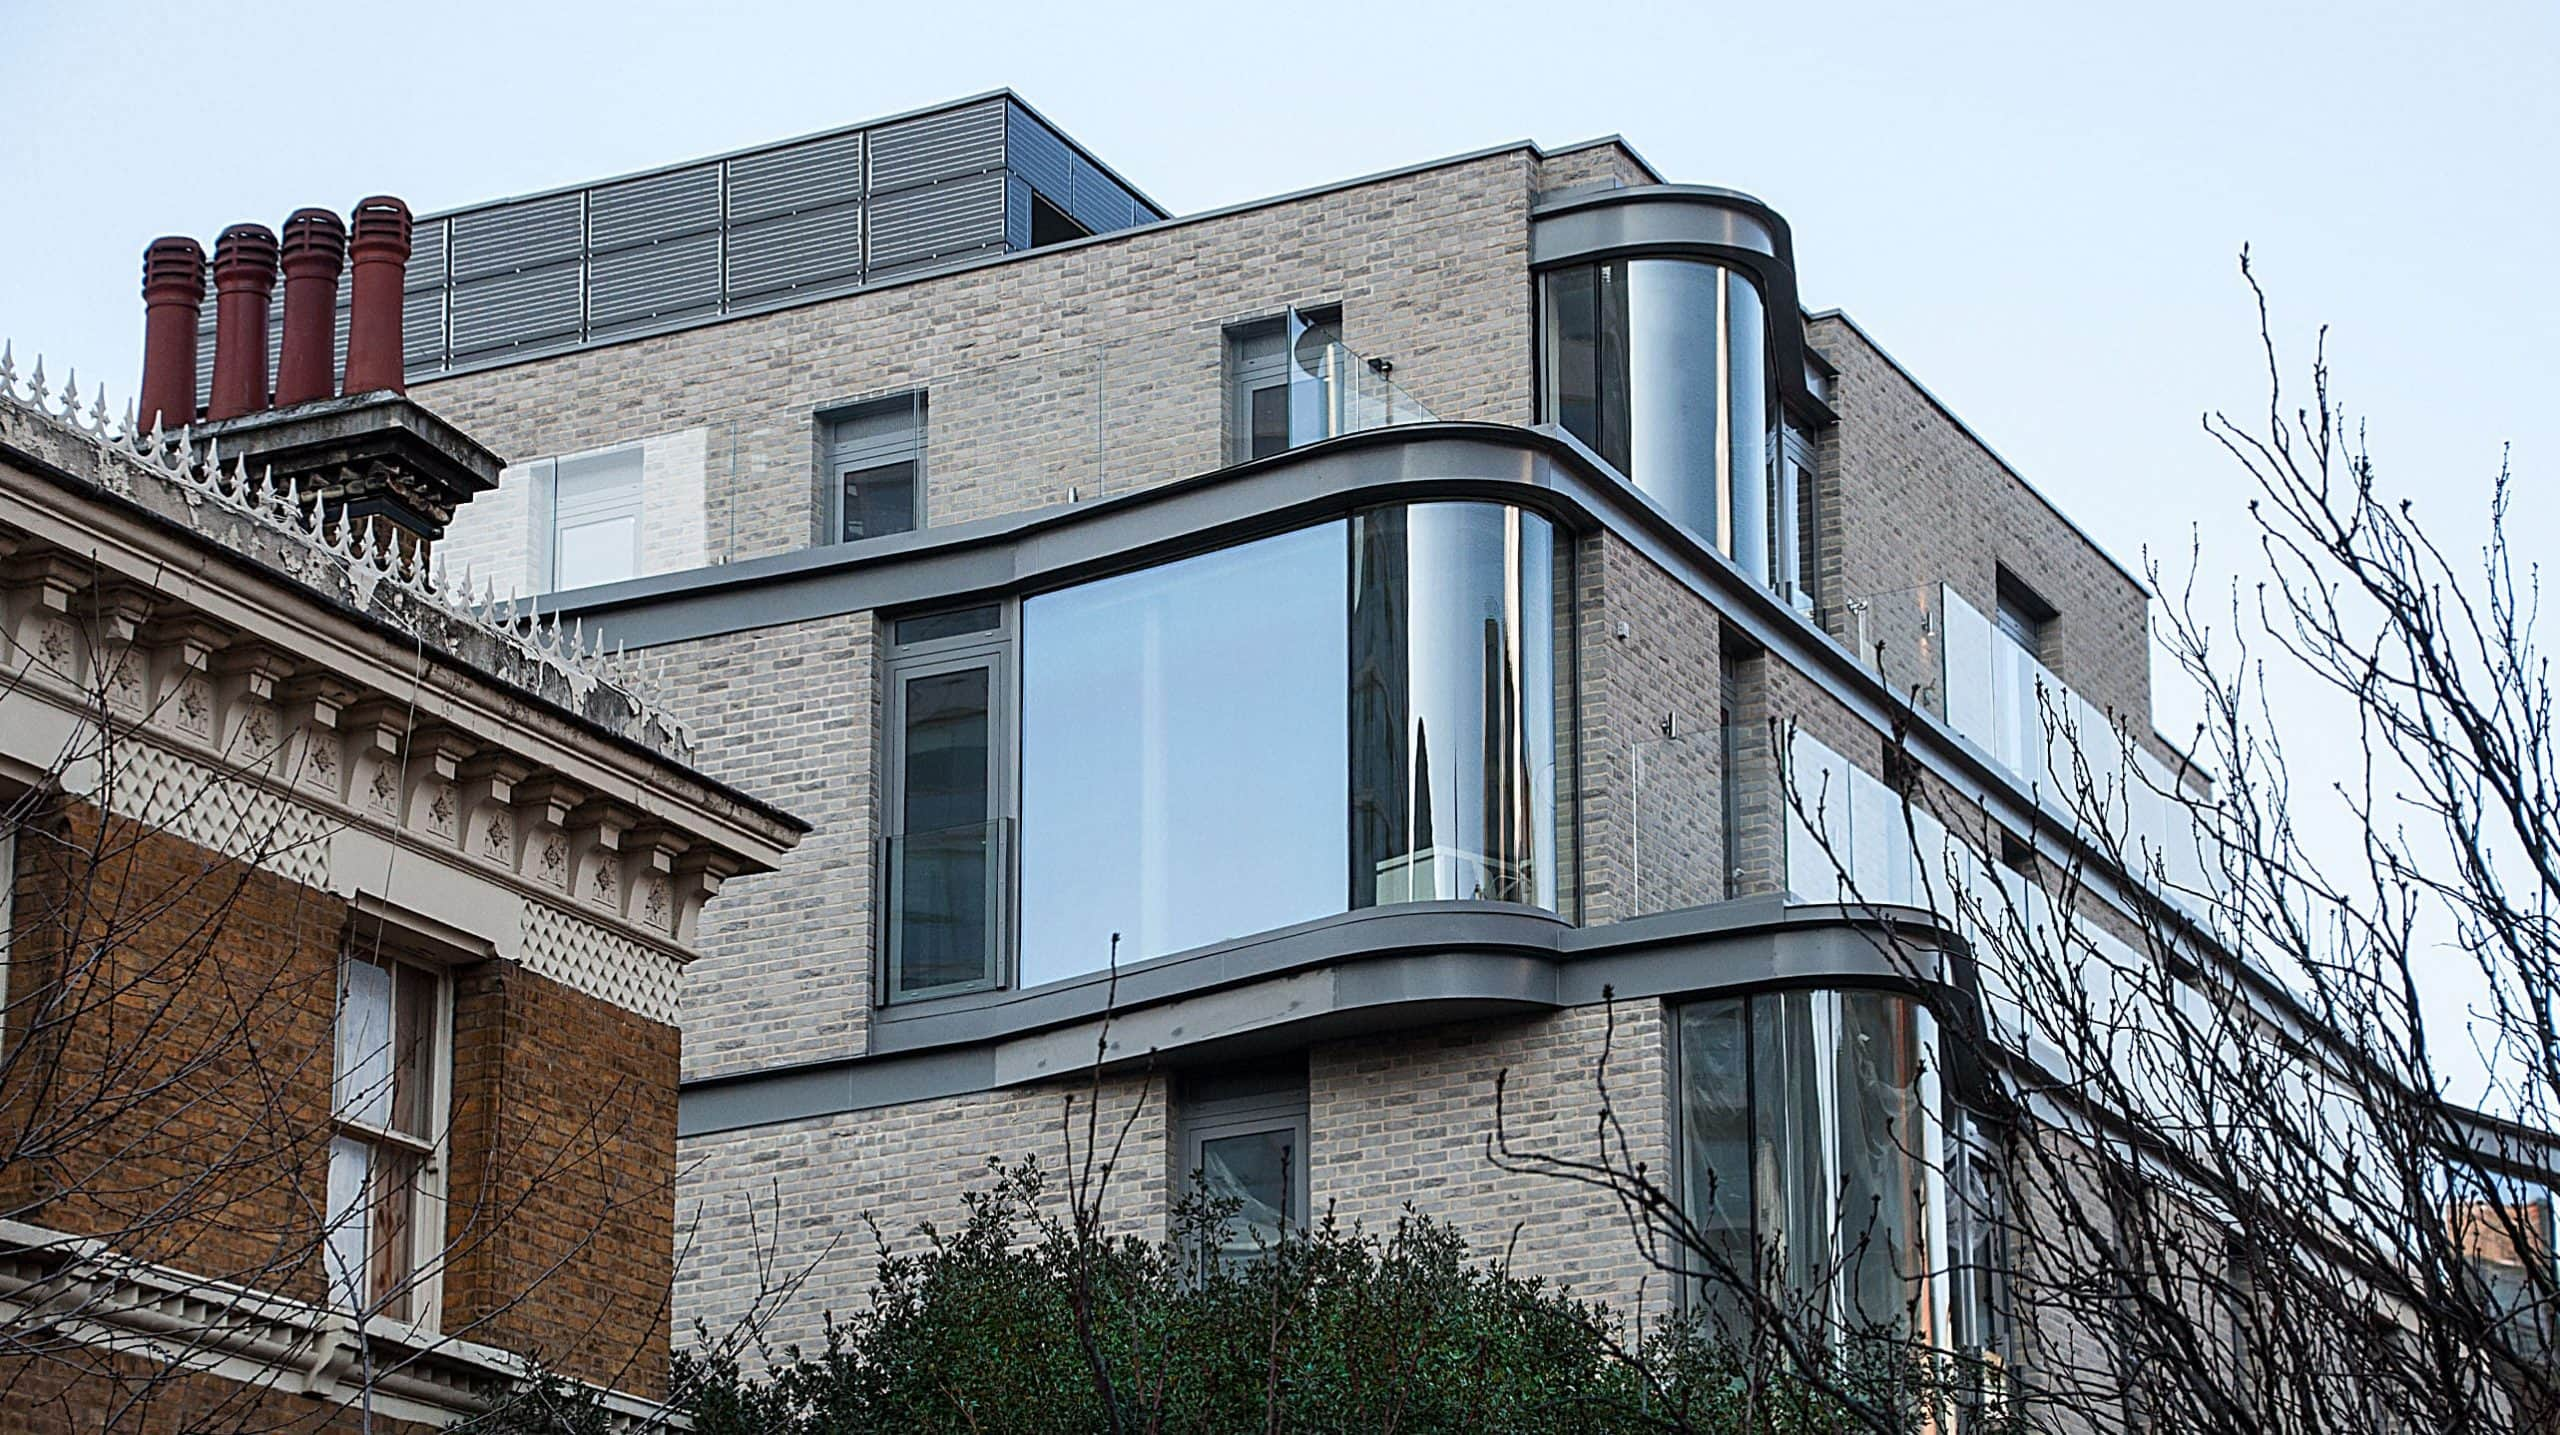 large windows with curved glass for clear panoramic views of the outdoors